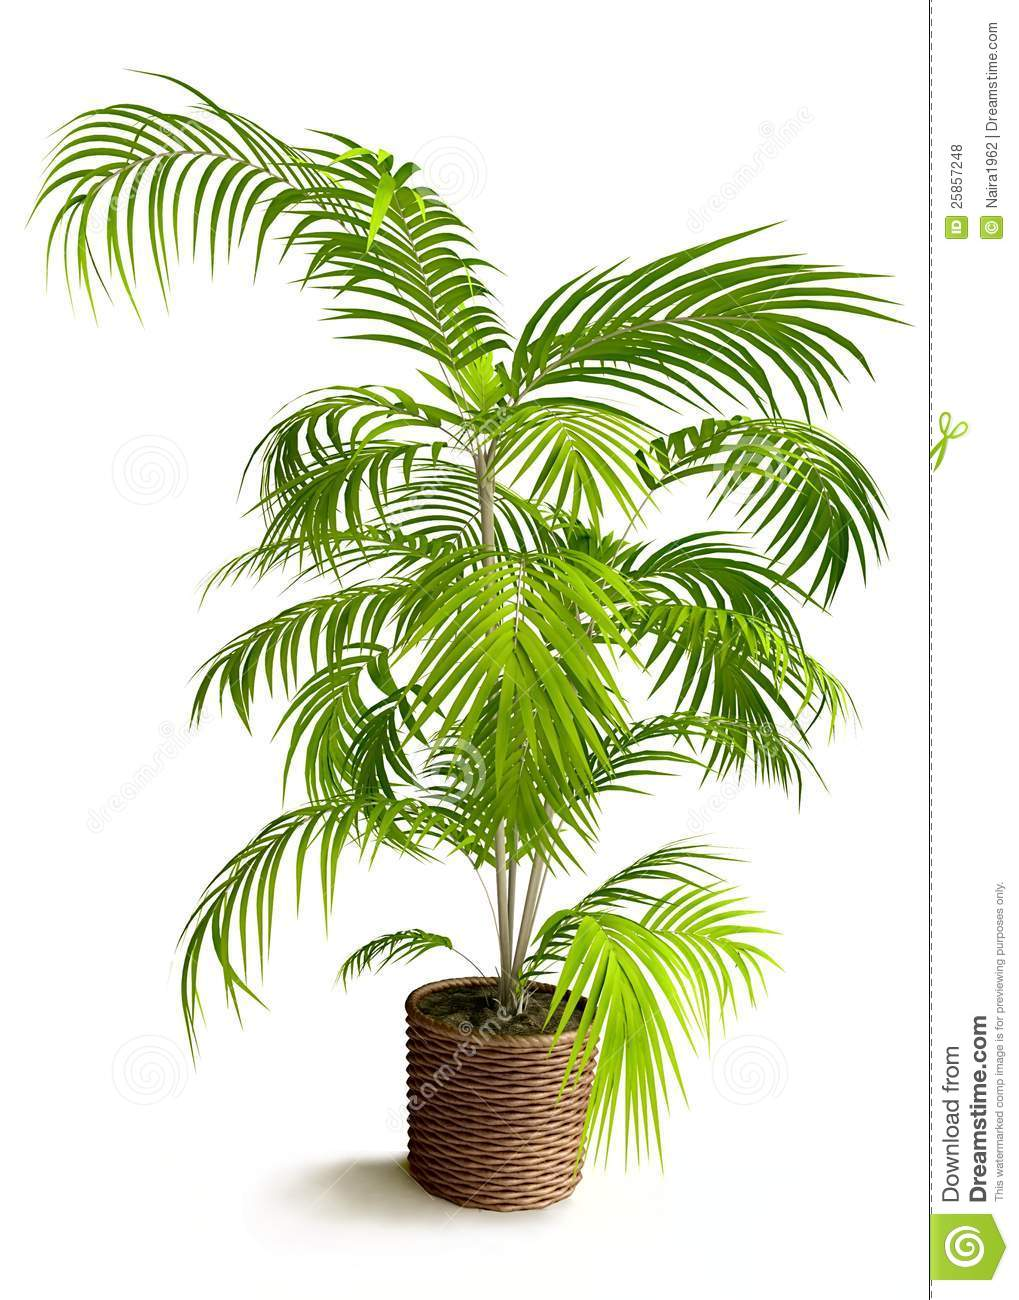 Tropical house plant pictures